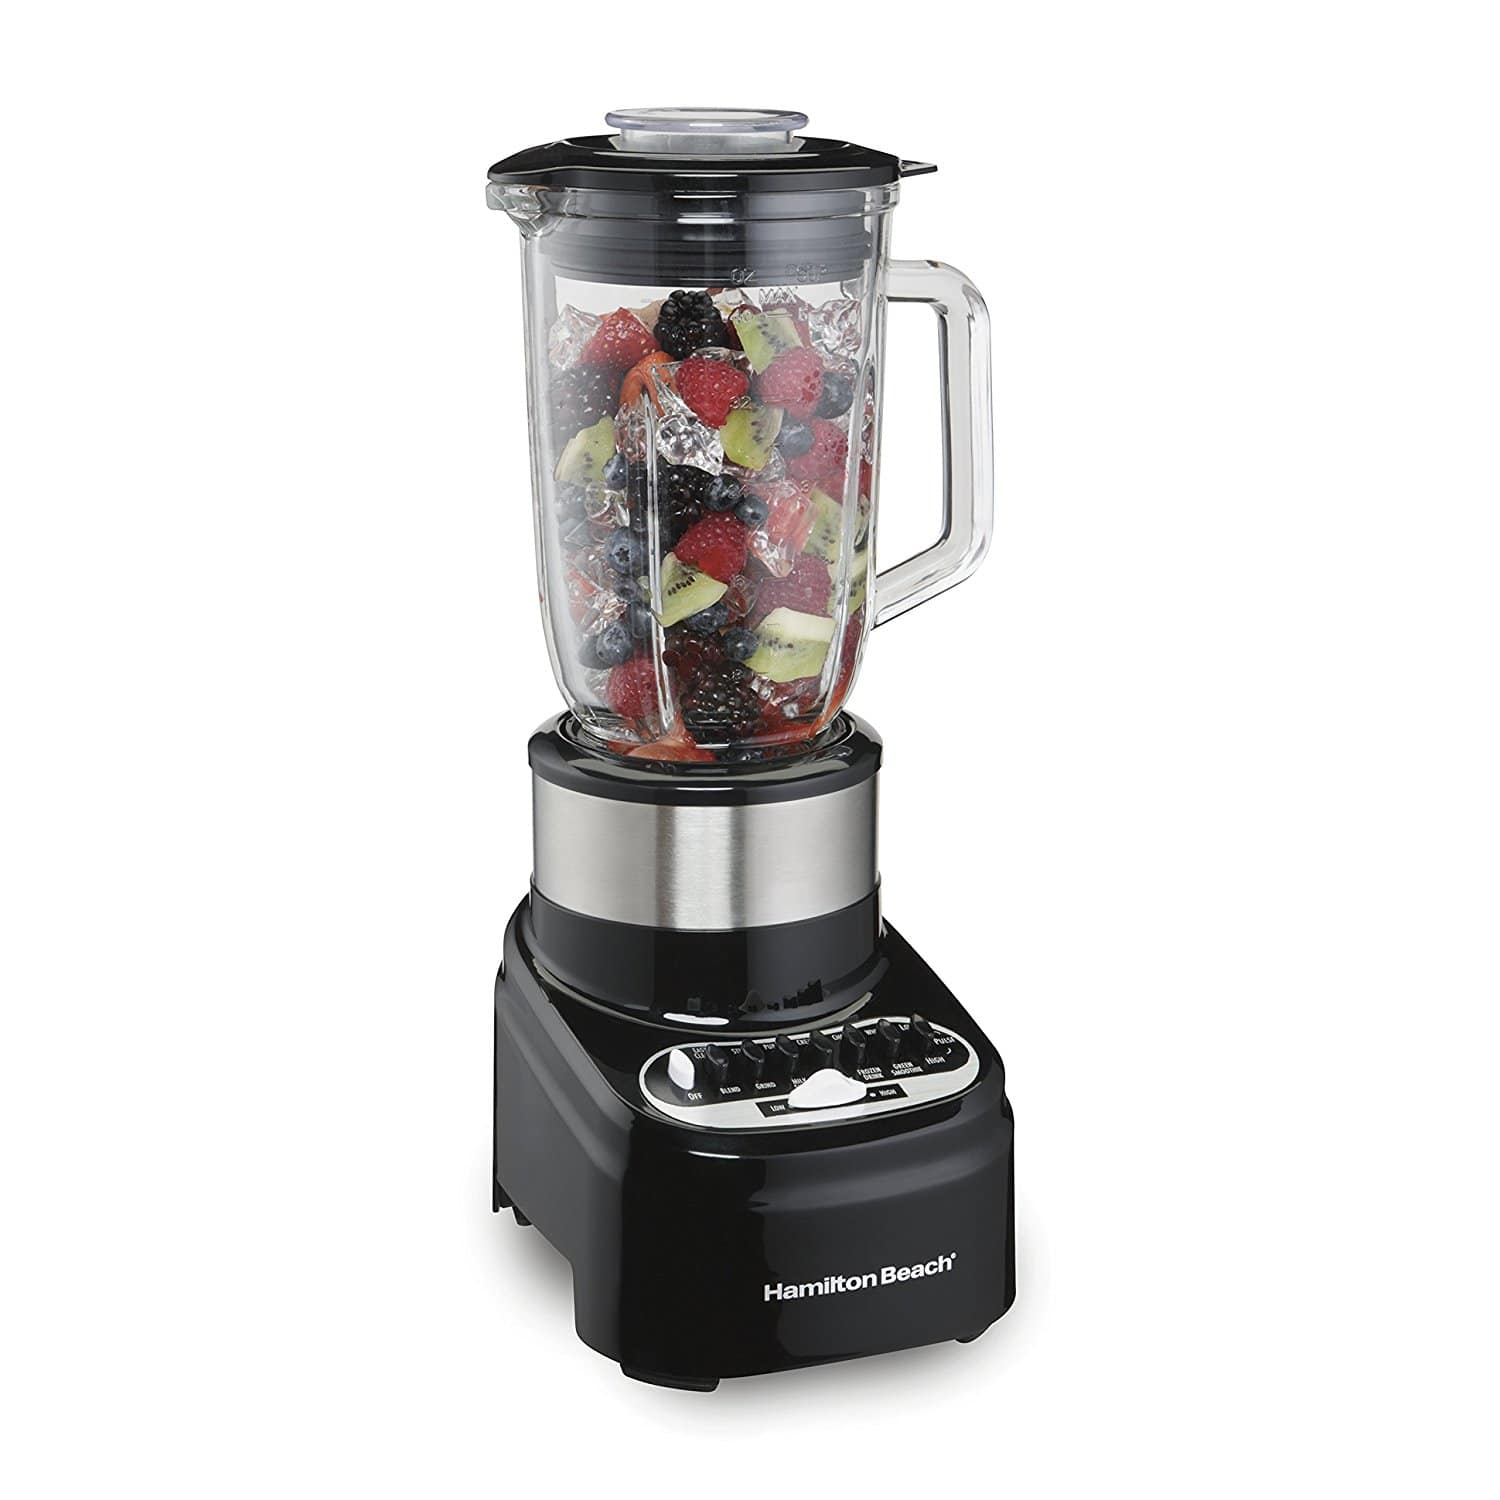 Hamilton Beach 54210 Blender Review